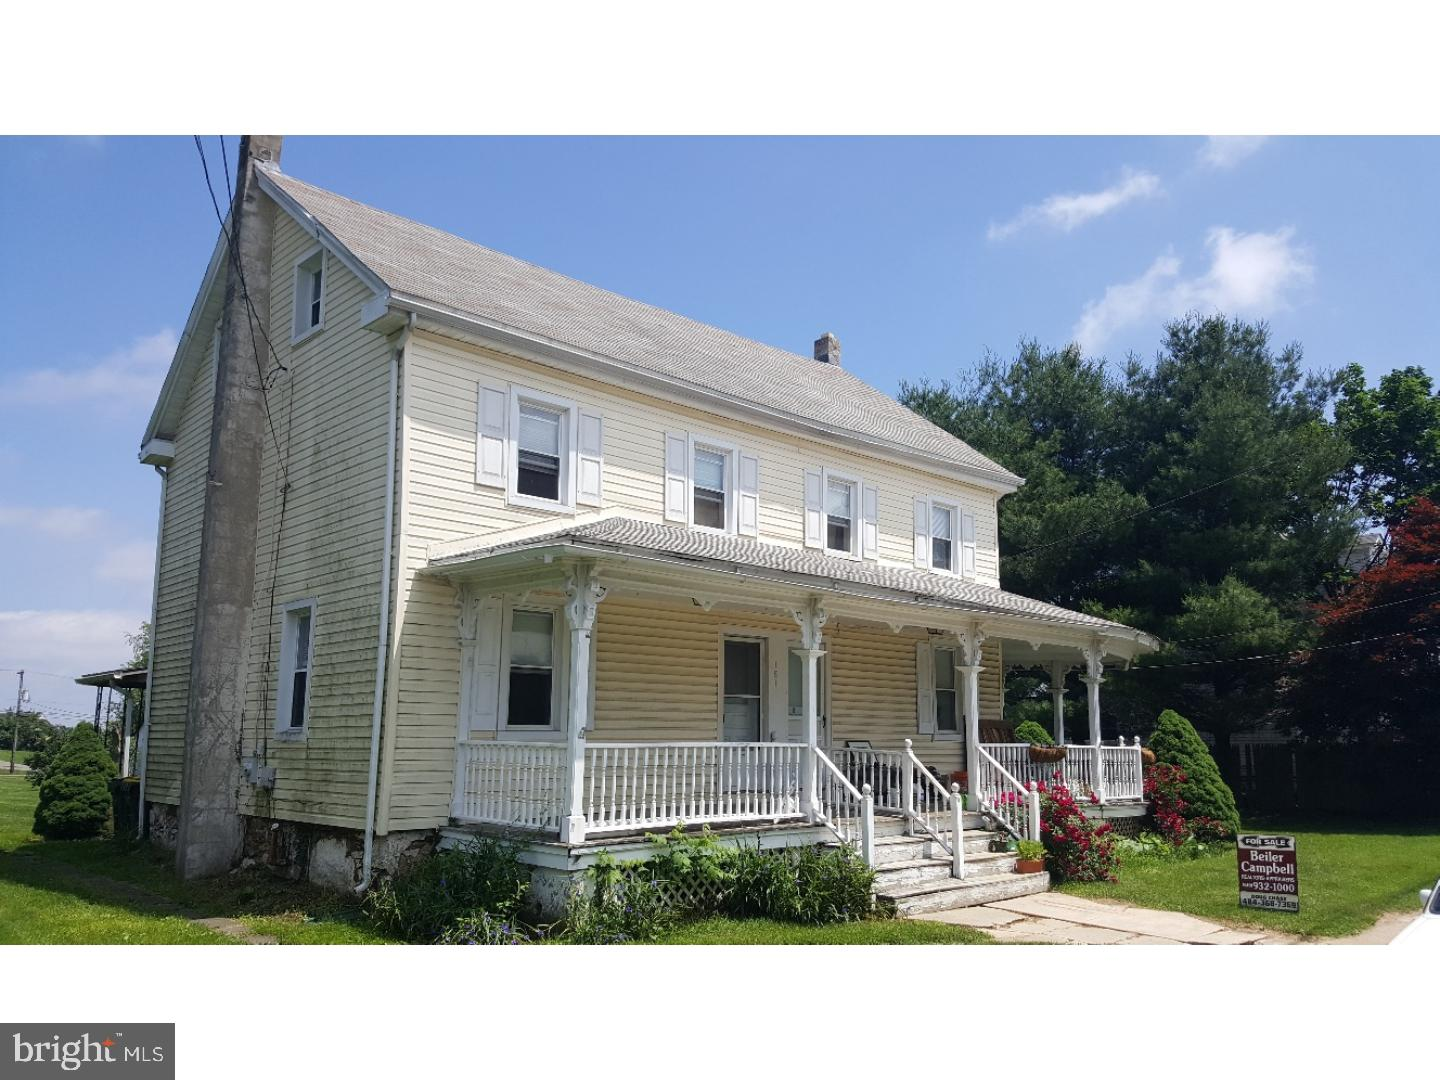 Great Investment Opportunity - short and long term.  Three unit rental house with 87' frontage on Route 41 in Cochranville, PA.  This property consists of one - 3 Bedroom Unit, one - 2 Bedroom Unit, and one - 1 Bedroom Unit.  Tenants pay all utilities.  Great cash flow! Also available is 175 Cochran Street MLS#7191126 adjacent to this property.